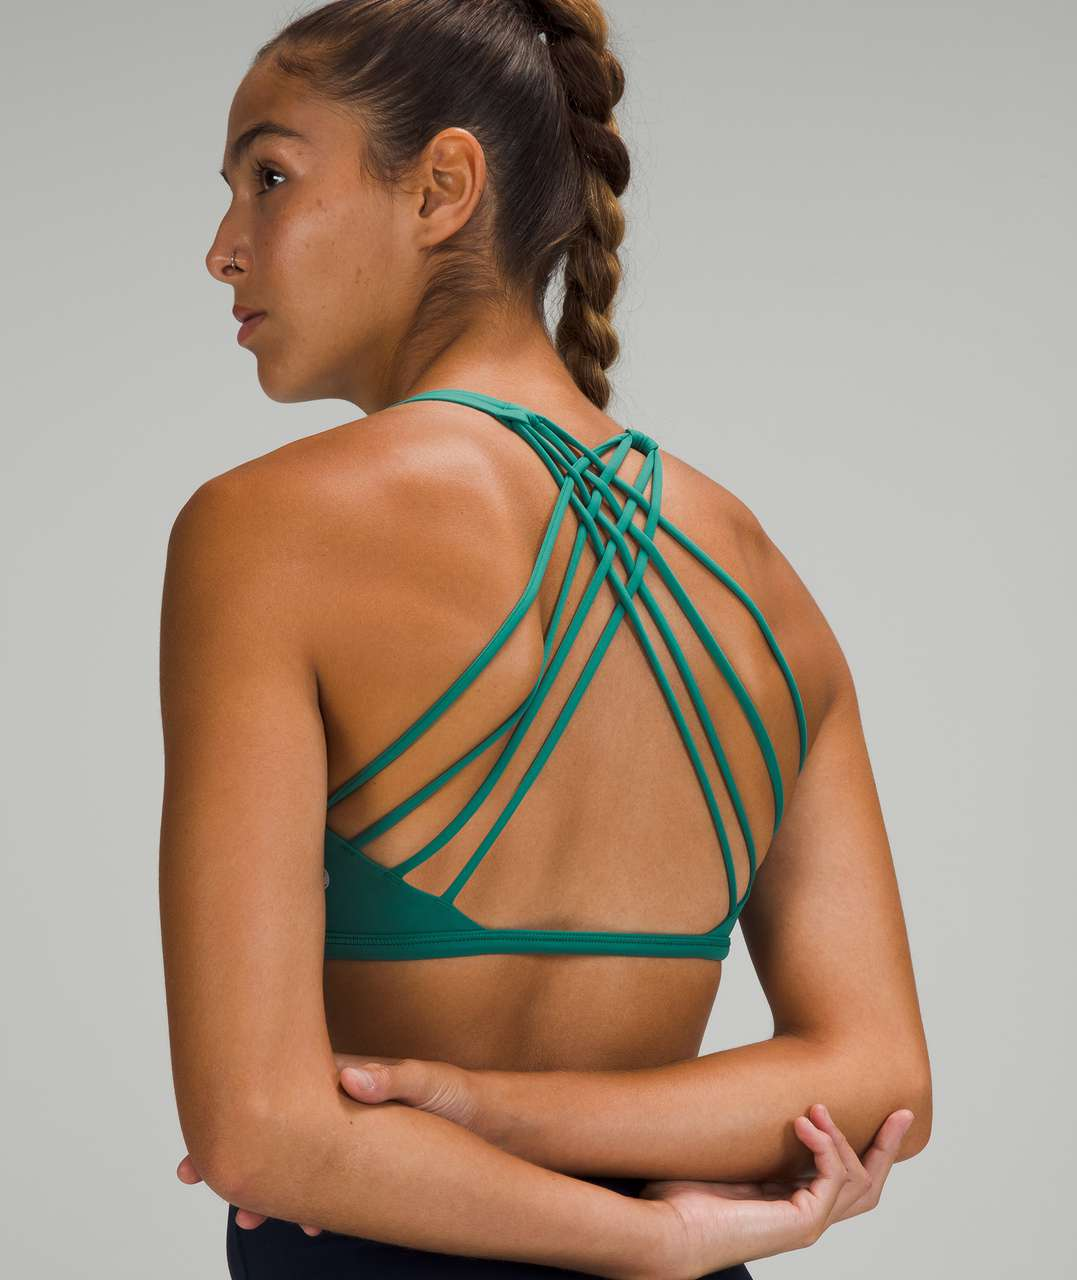 Lululemon Free to Be Bra - Wild *Light Support, A/B Cup - Teal Lagoon